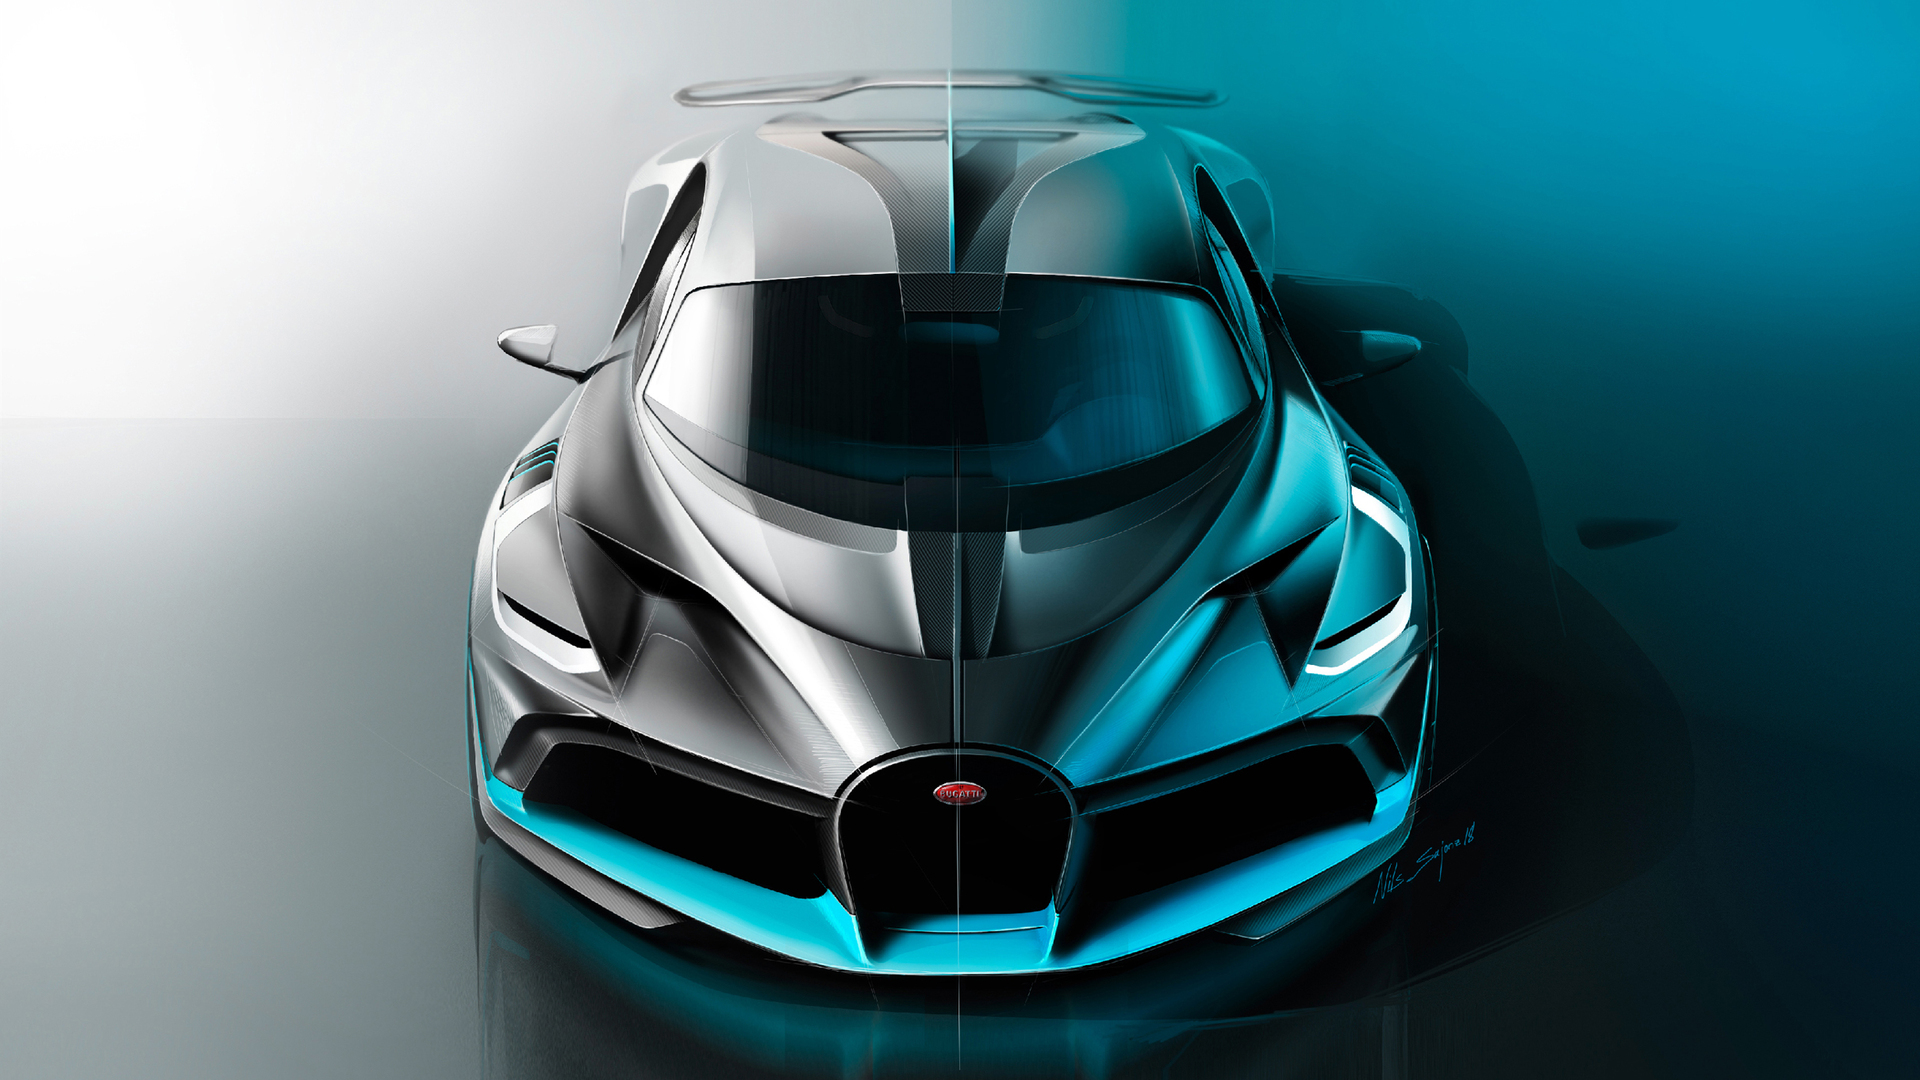 1920x1080 Bugatti Divo 2018 Latest Laptop Full Hd 1080p Hd 4k Wallpapers Images Backgrounds Photos And Pictures